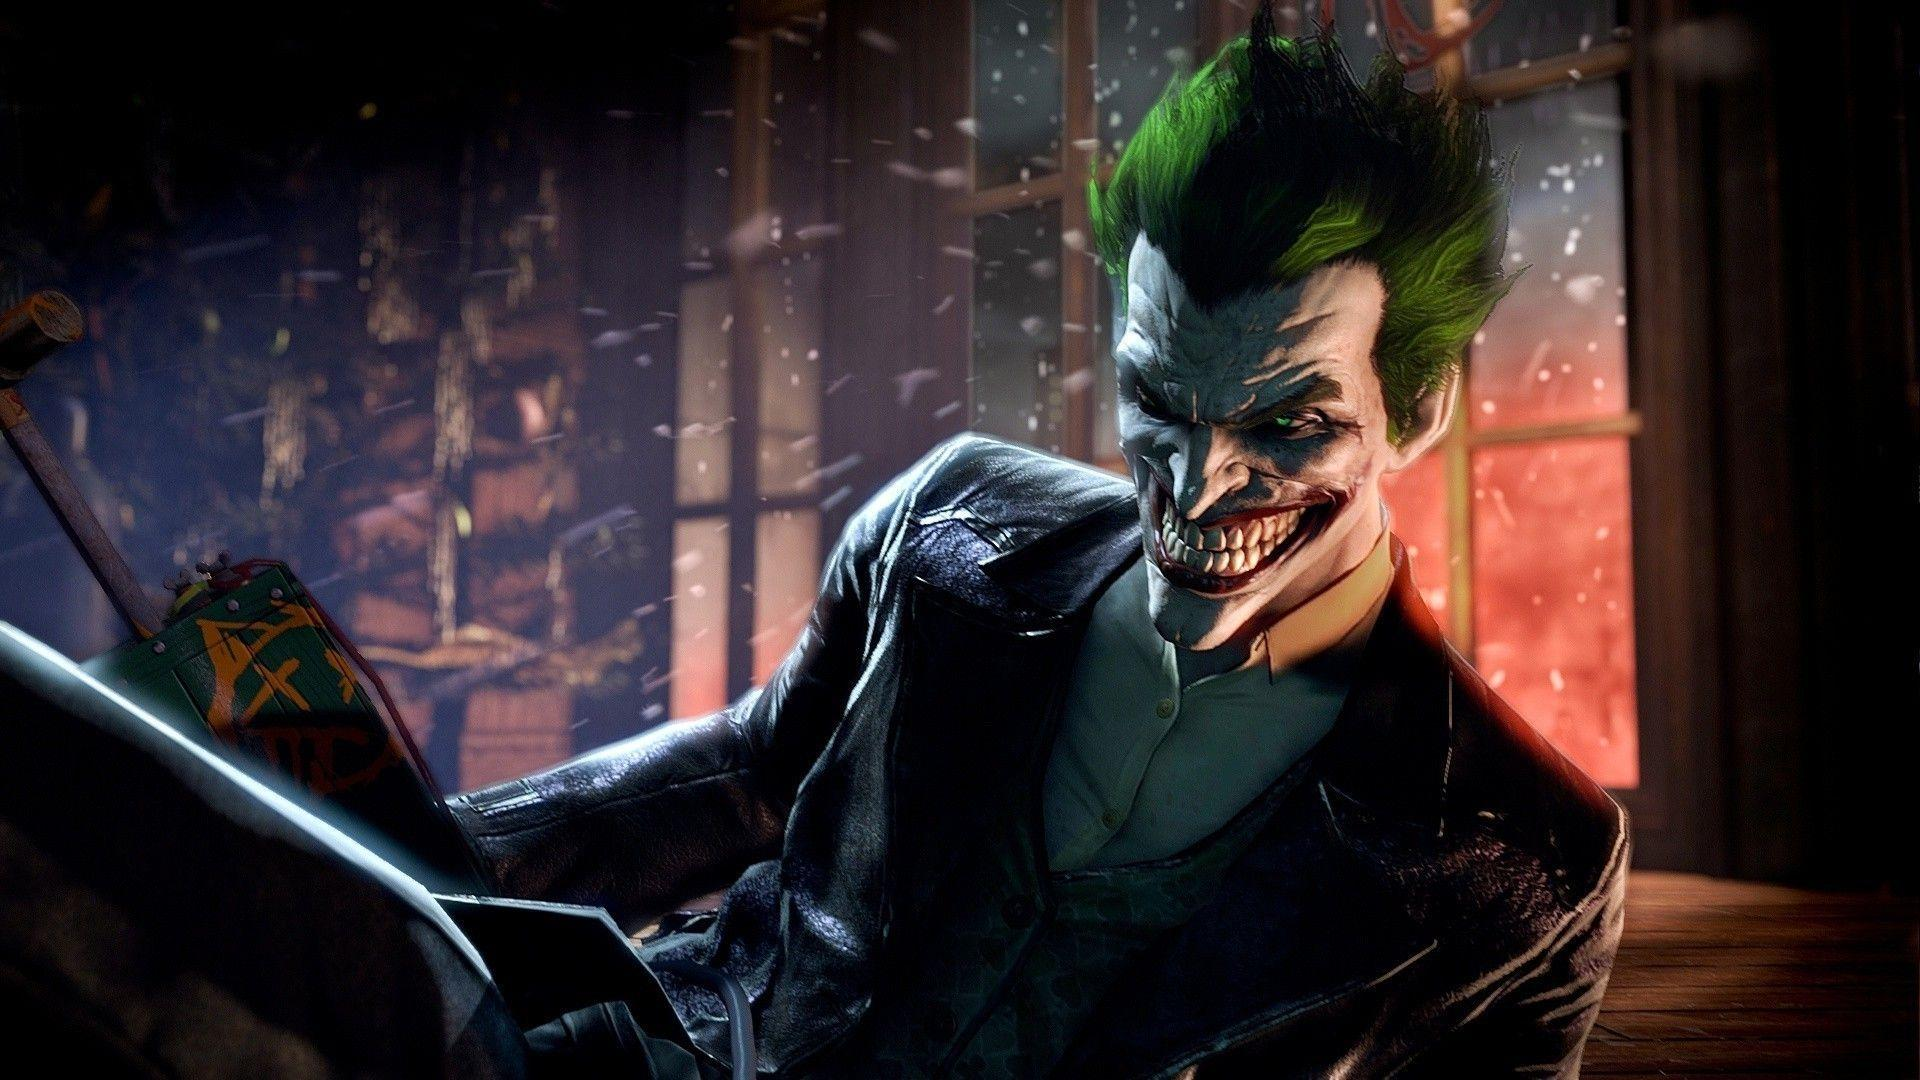 Batman Arkham Origins Joker Hd Wallpapers Wallpaper Cave